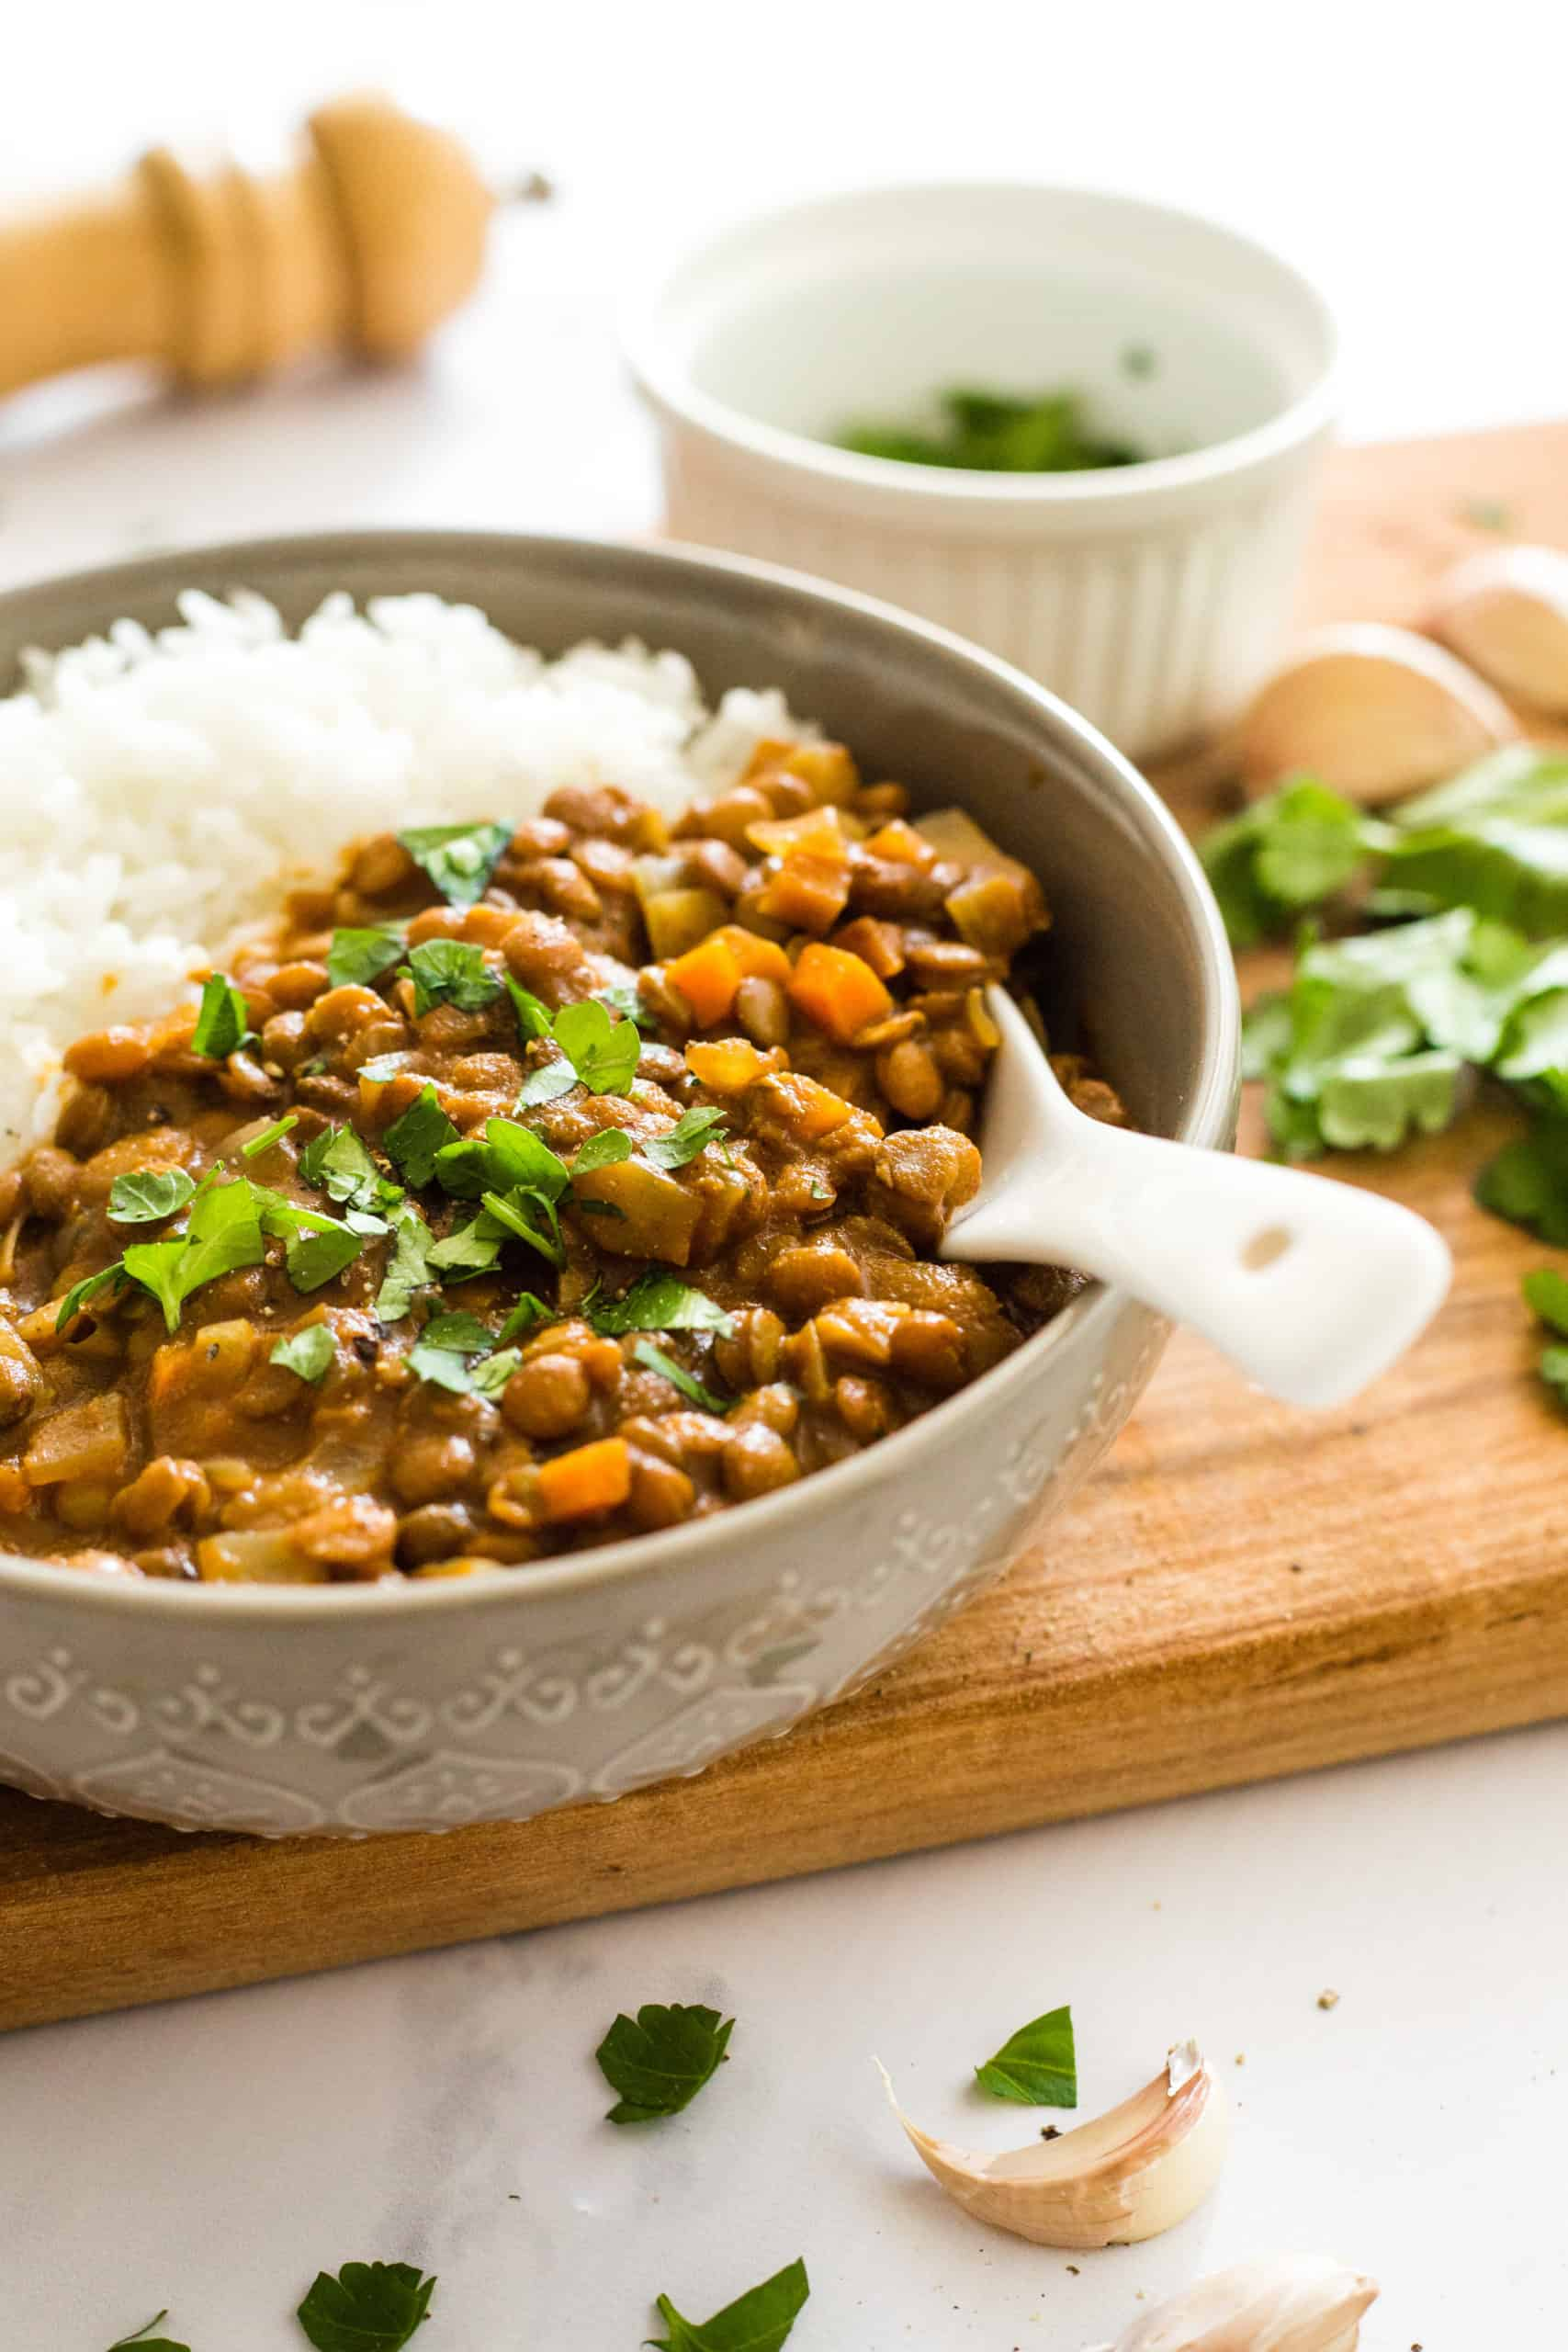 Lentil curry in a bowl on a wooden board